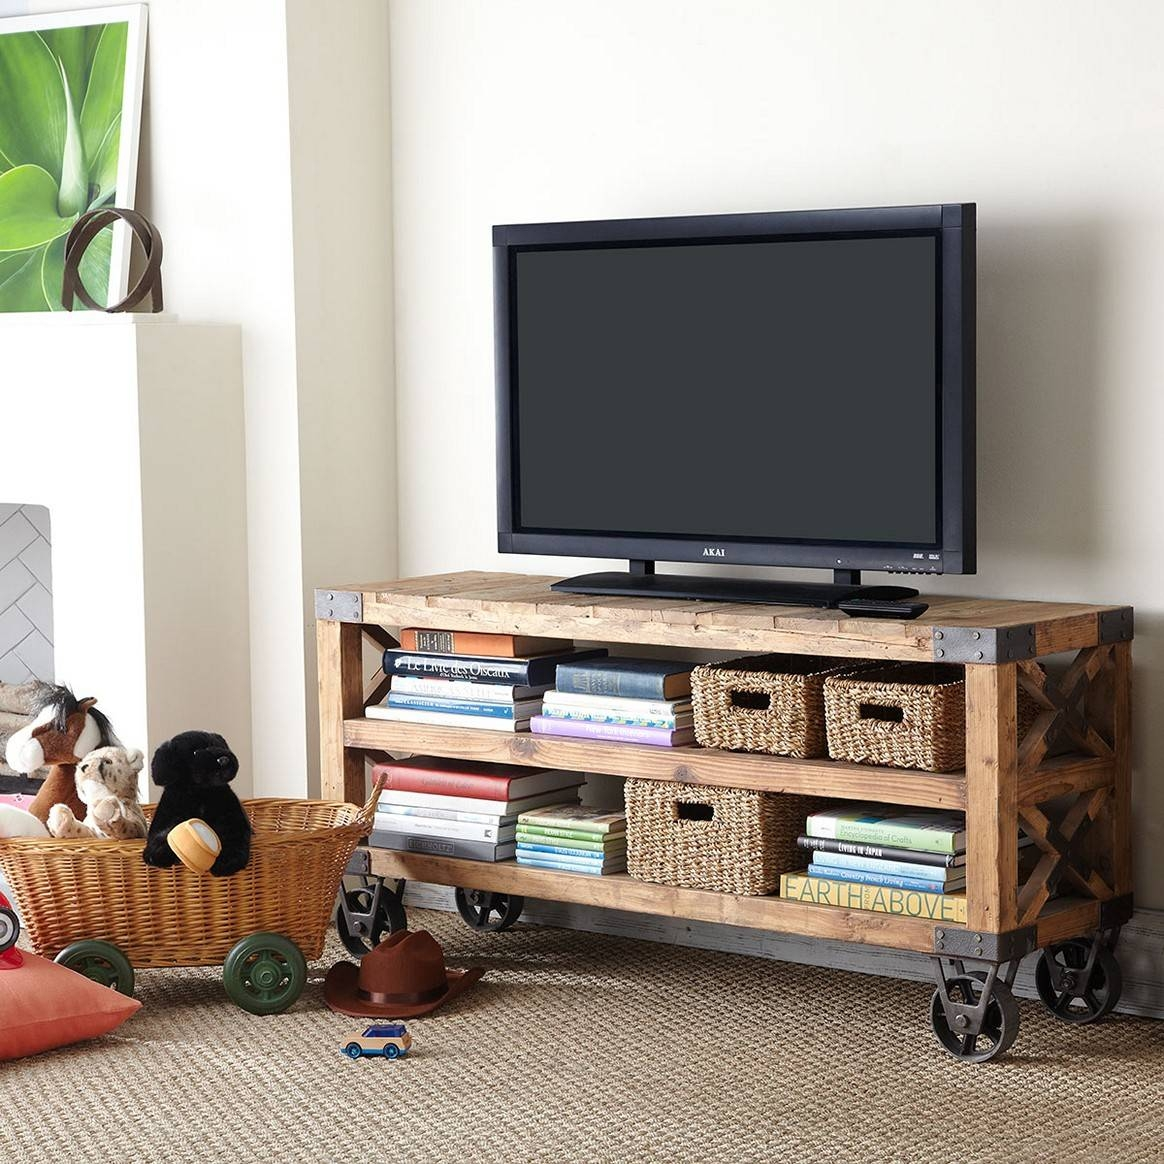 Tv Stands For Bedroom Dressers Ideas With Small Apartment Picture Throughout Tv Stands With Storage Baskets (View 13 of 15)